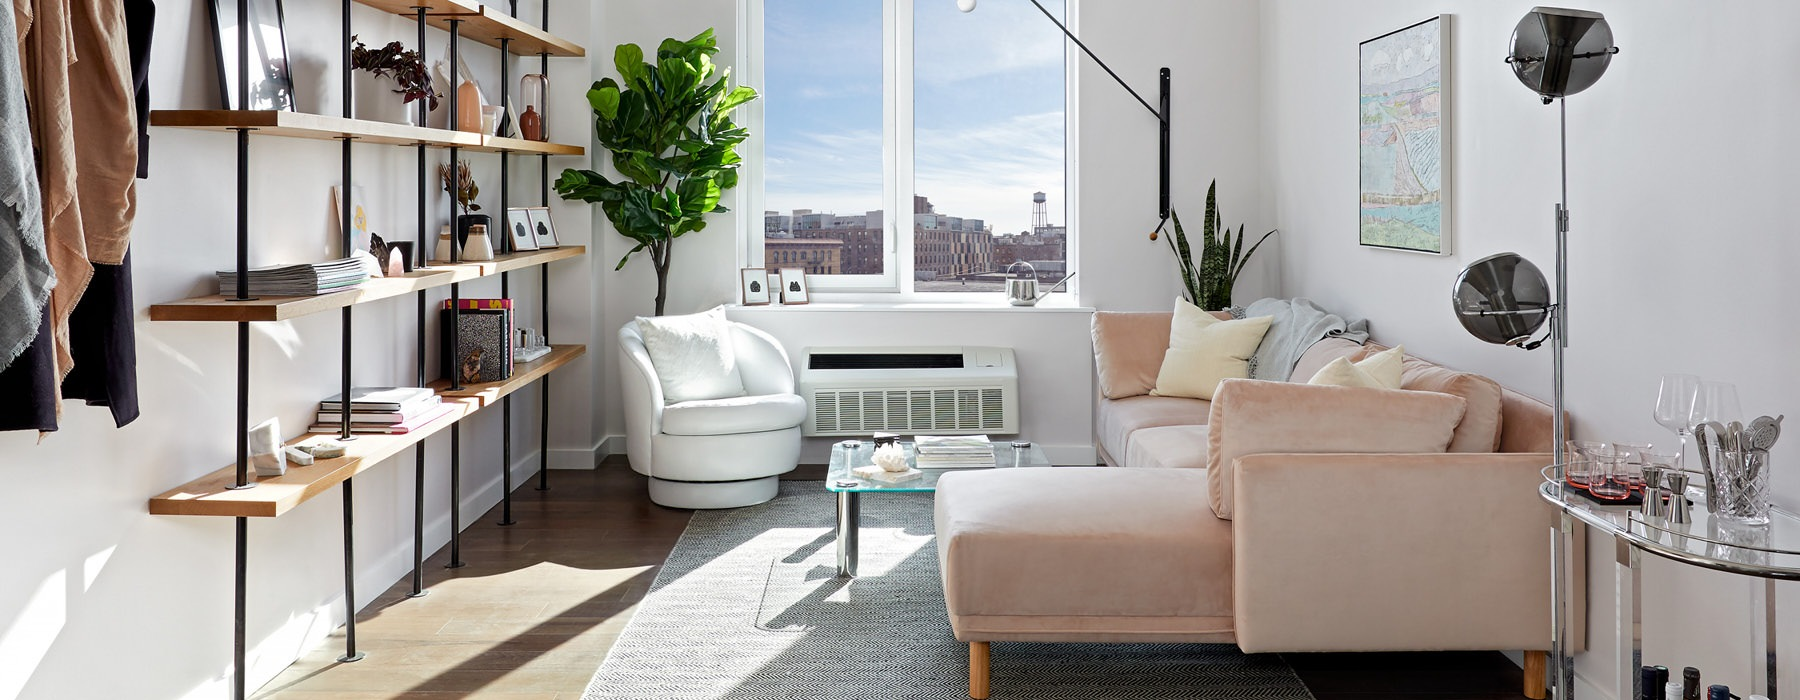 well lit living room with large windows